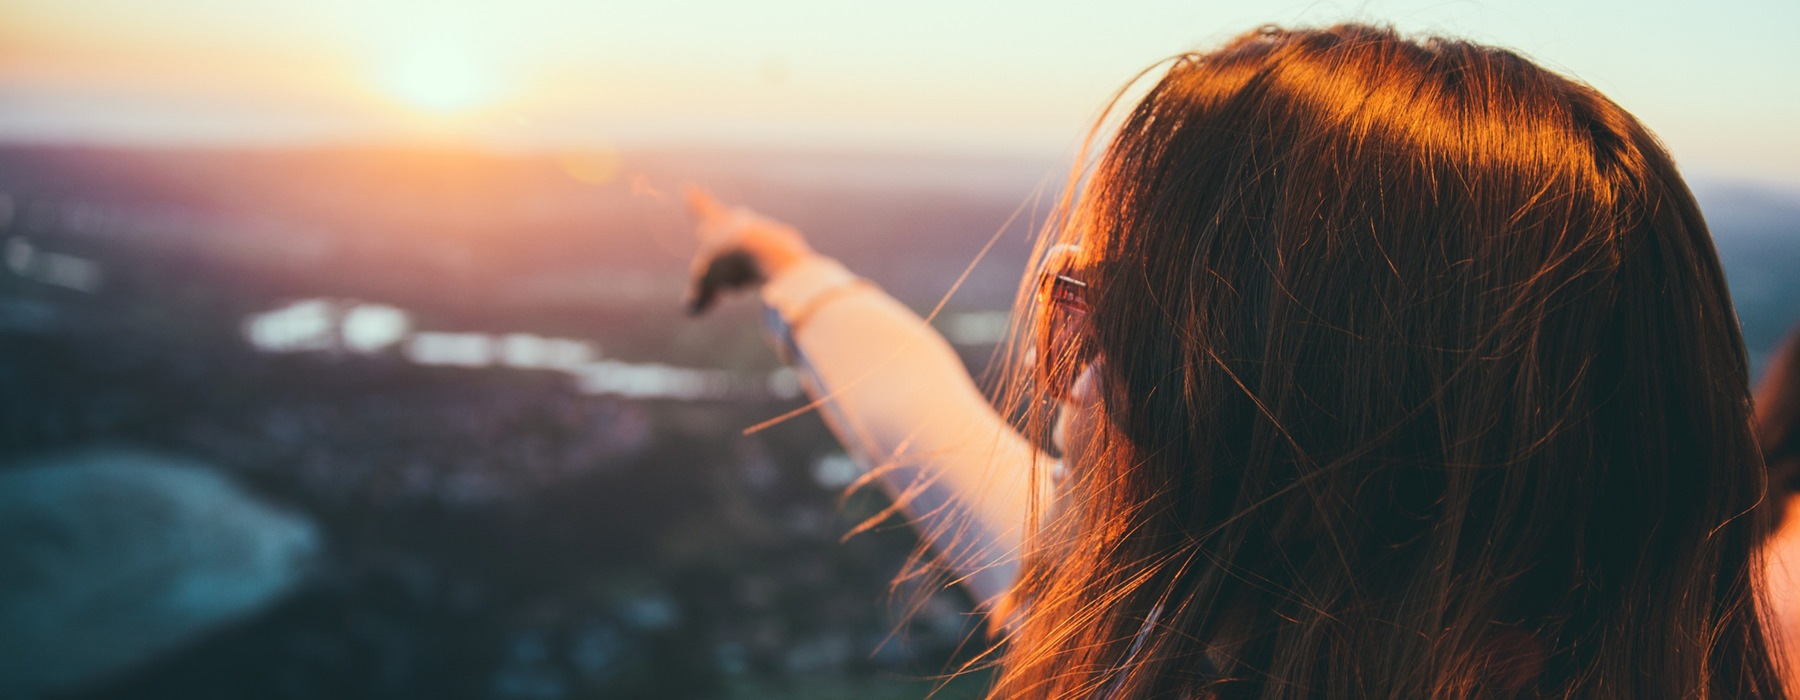 lifestyle photo of woman with sunglasses overlooking rivers and town while pointing toward the sunset